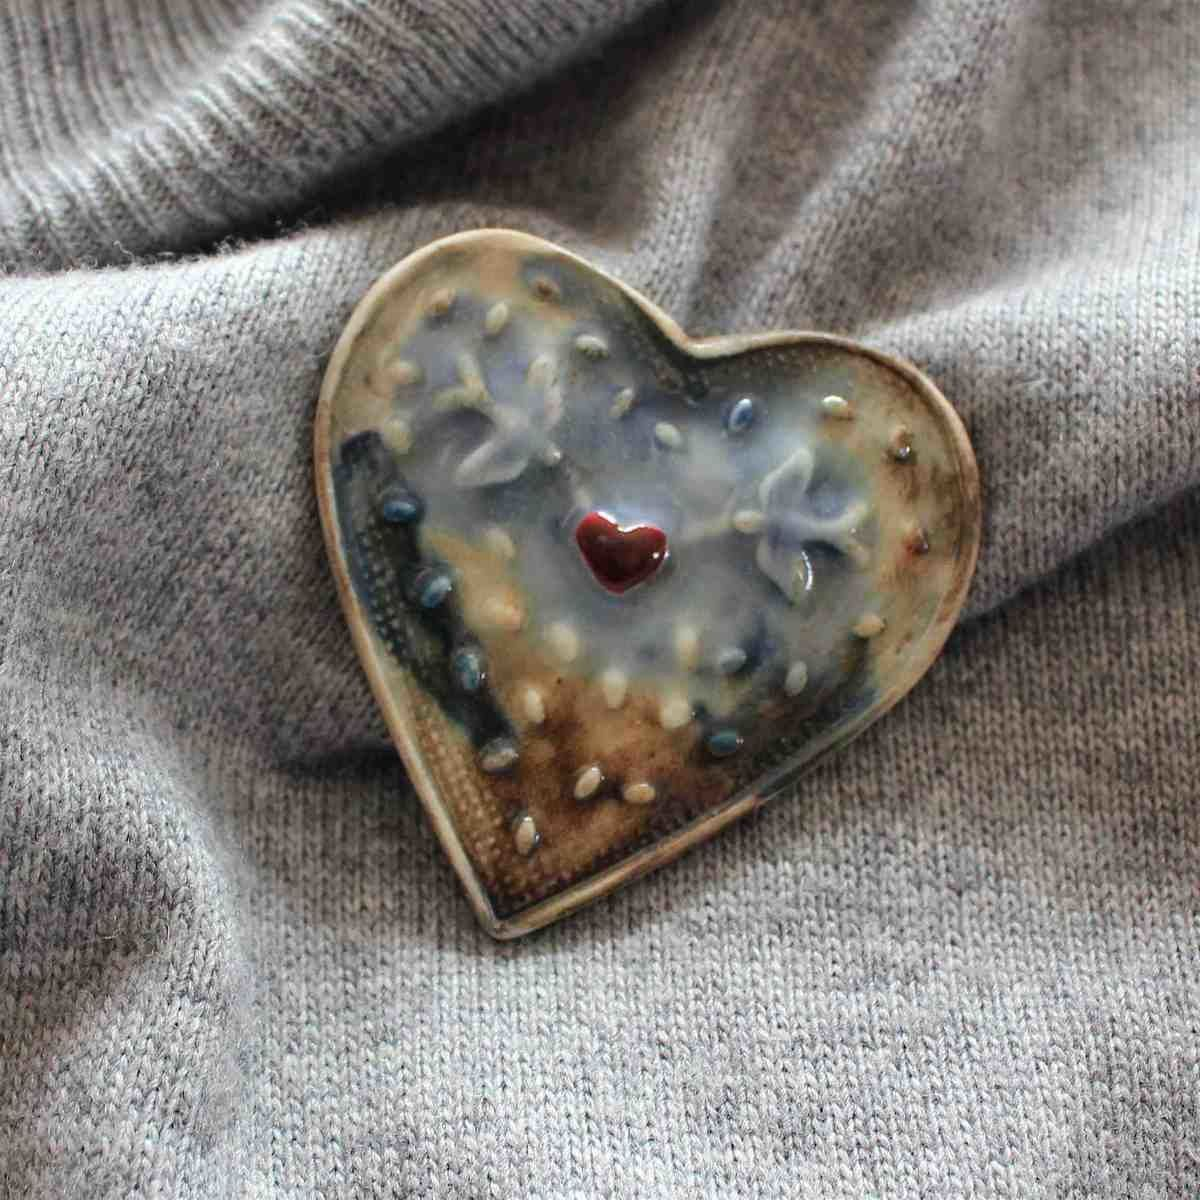 Country Living Editor Says  Made from porcelain, with oxide and glaze decoration, this heart-shaped brooch will add a distinctive touch to any outfit.  Each one is handmade so there may be slight variations, making every piece charmingly unique.   Measurements: 5cm x 5cm at widest points.